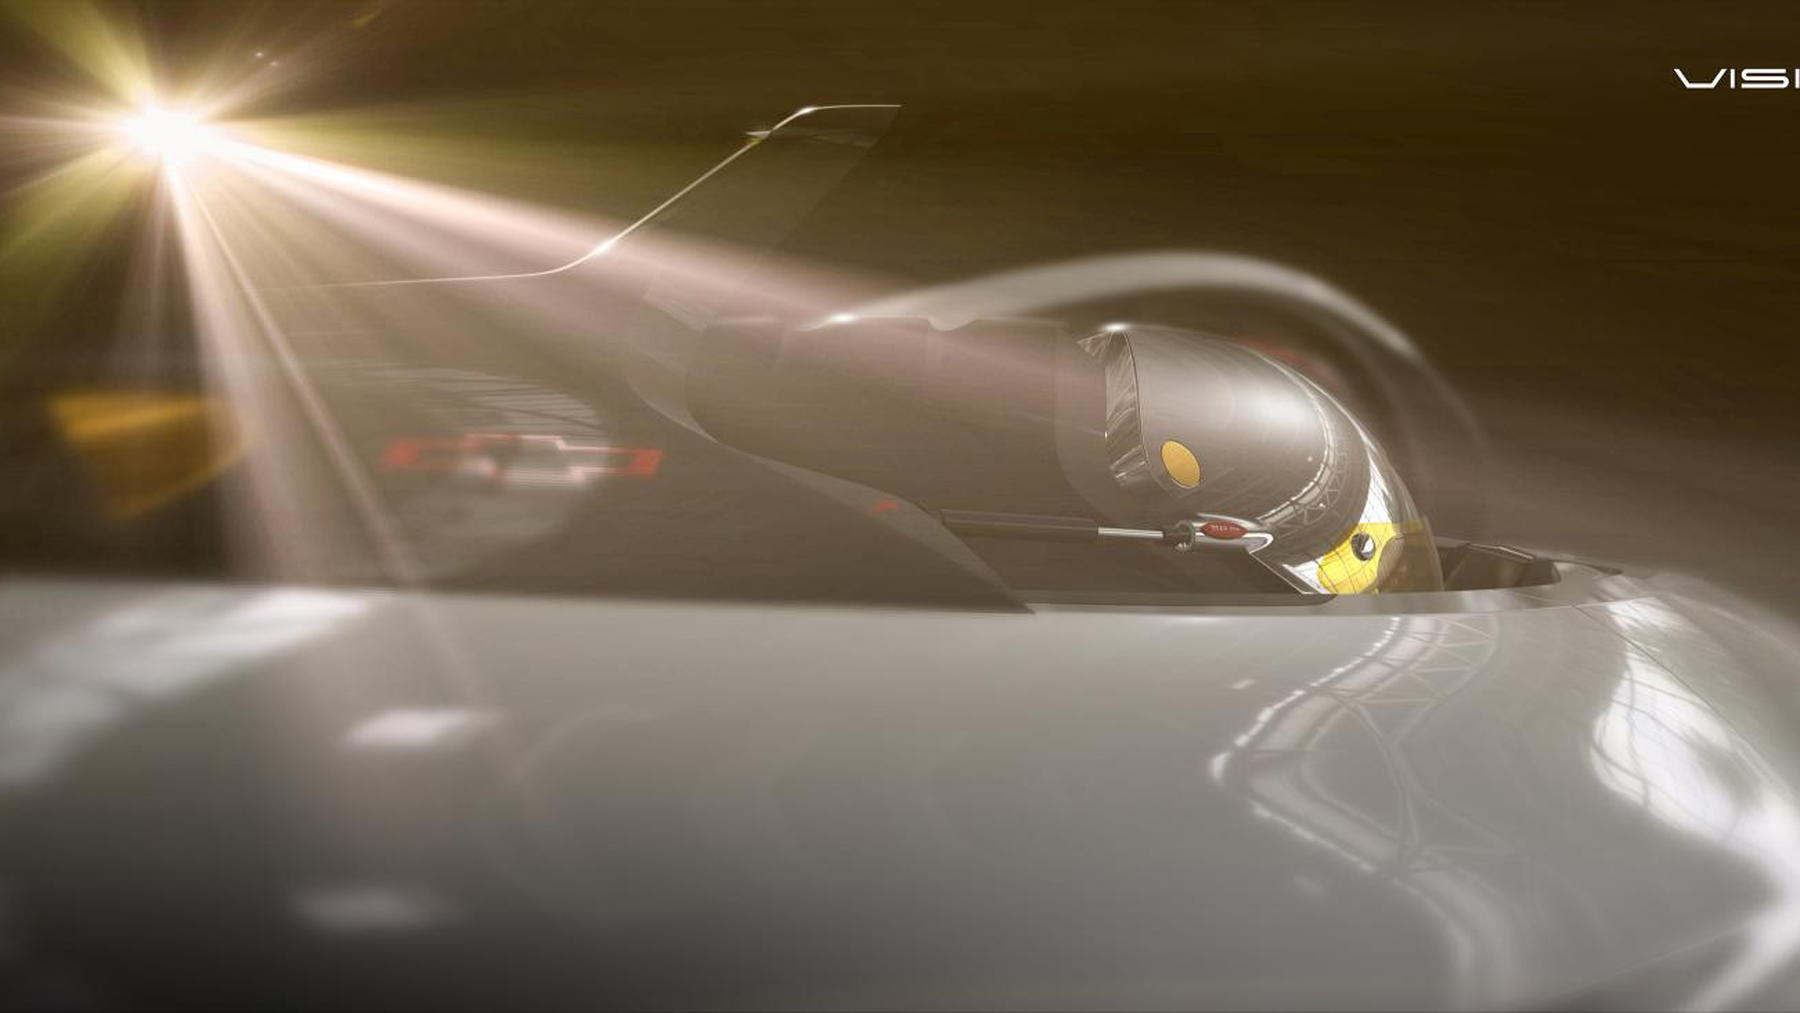 Chevrolet Chaparral 2X Vision Gran Turismo concept teaser